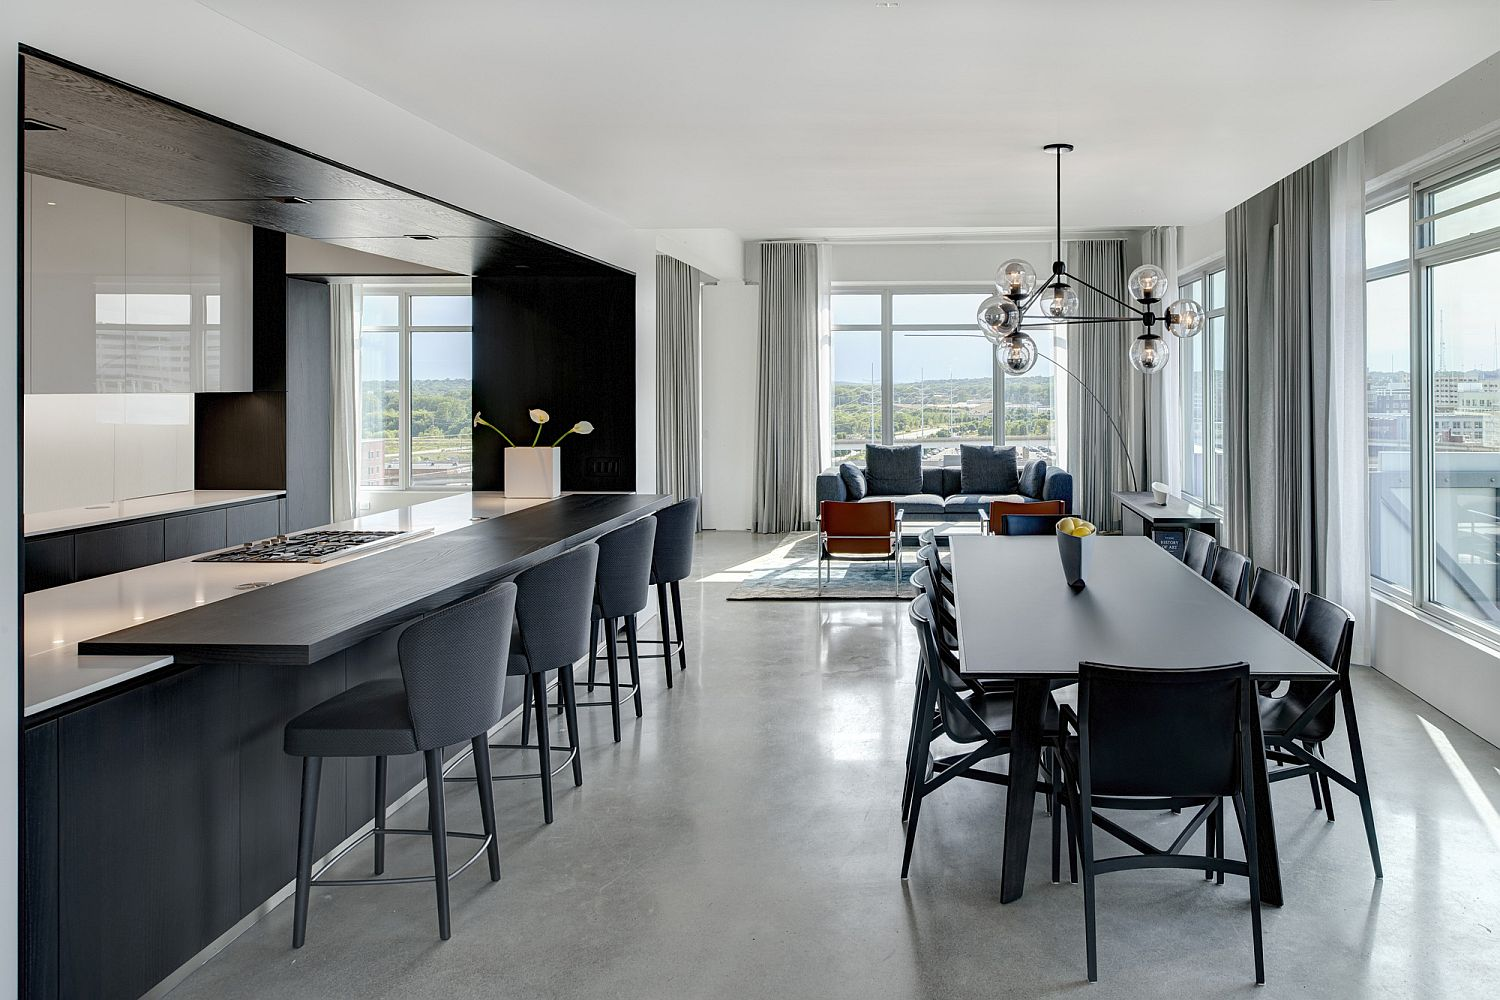 Open living area in white with gray kitchen and dining space